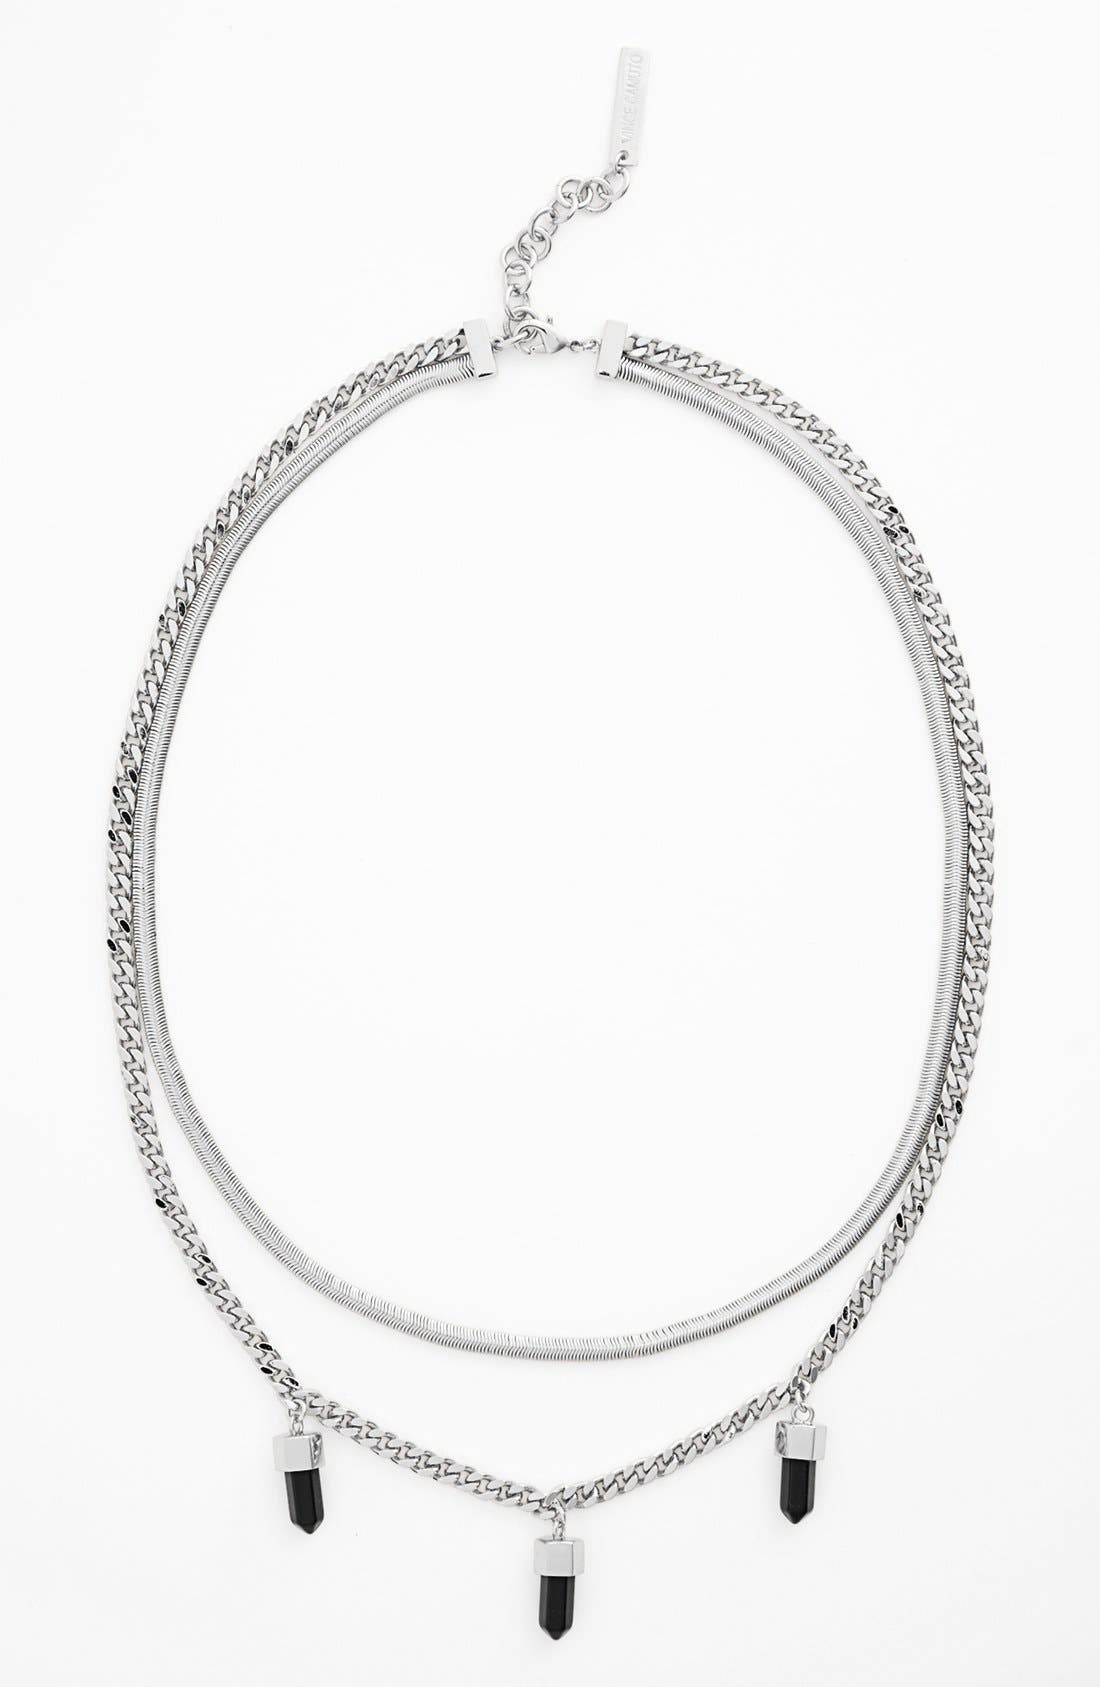 Main Image - Vince Camuto 'Bullet Proof' Multistrand Necklace